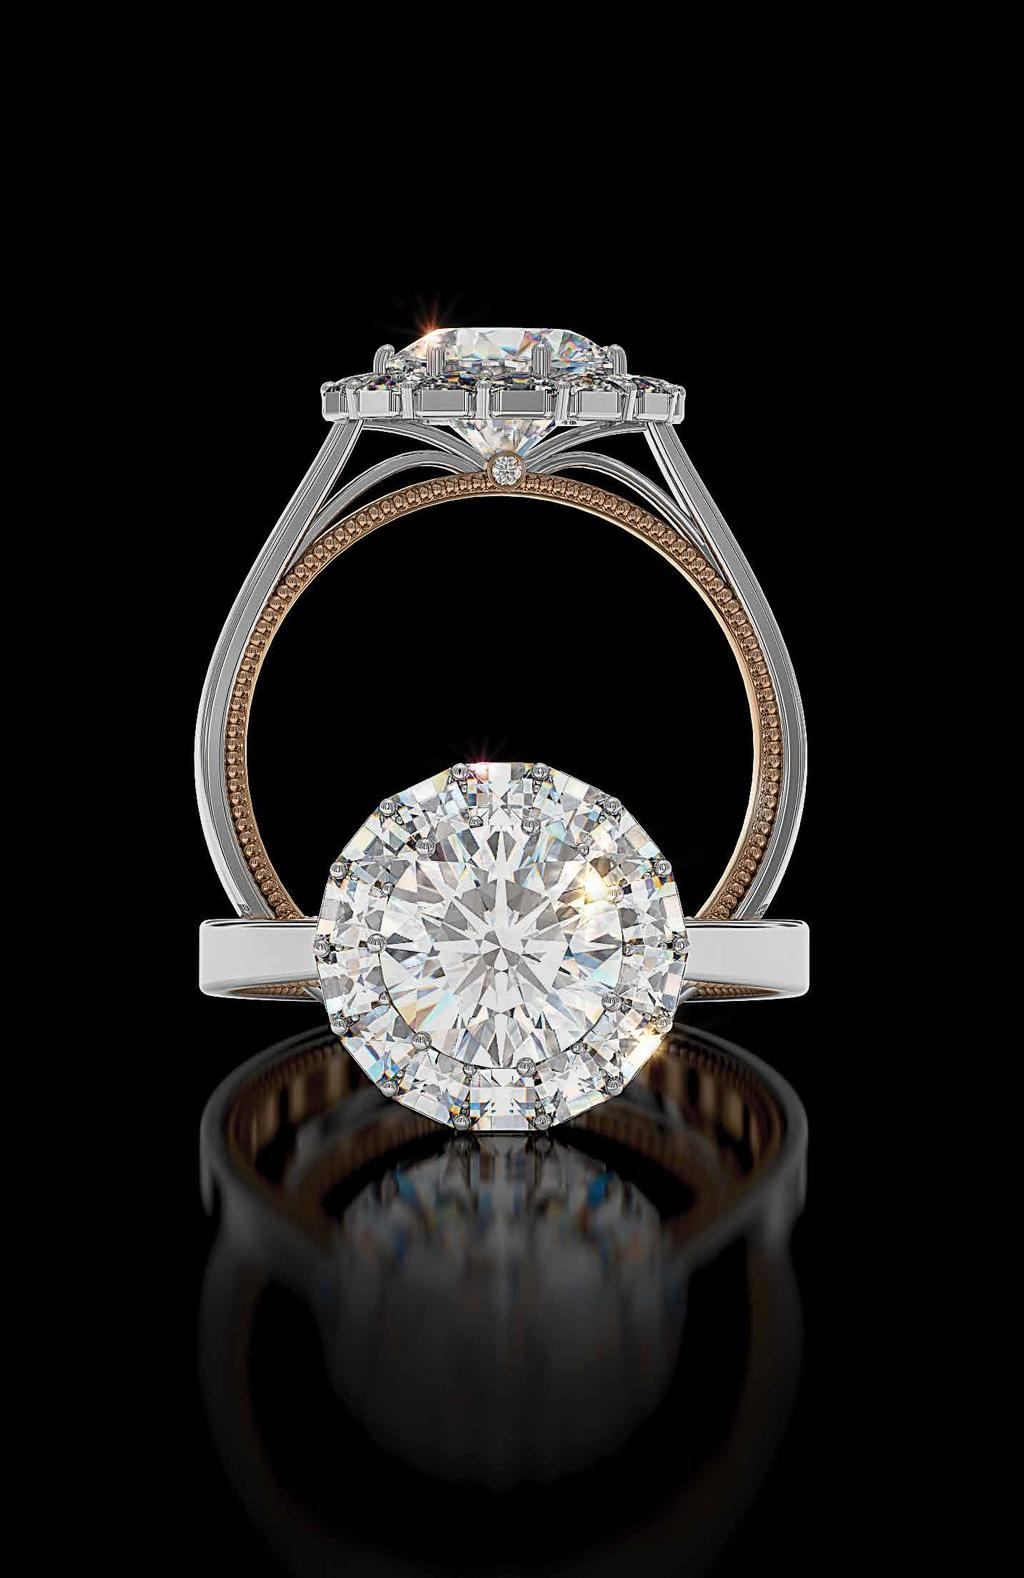 Ring of Fire Rose and white gold Ring of Fire with Blaze diamonds for a round center - the ultimate halo. A.